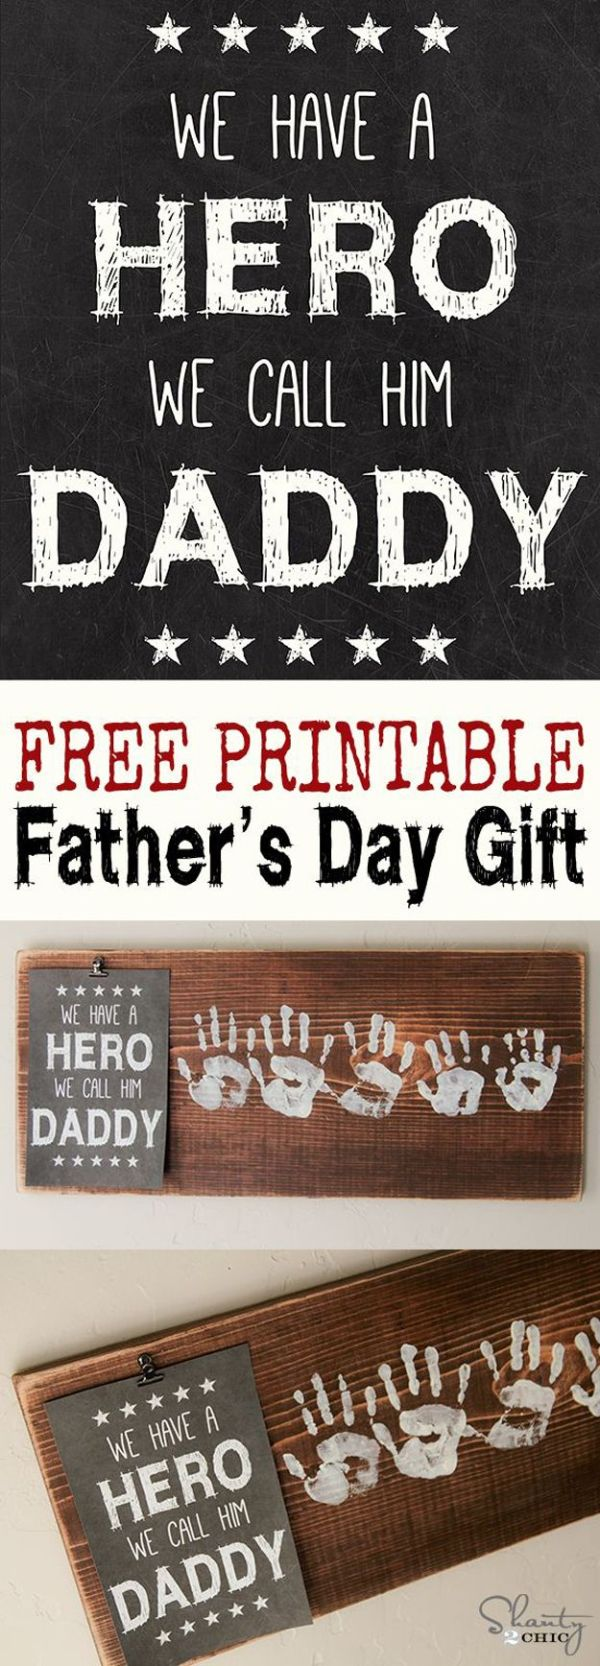 130 best Preschool Father's Day Crafts images on Pinterest